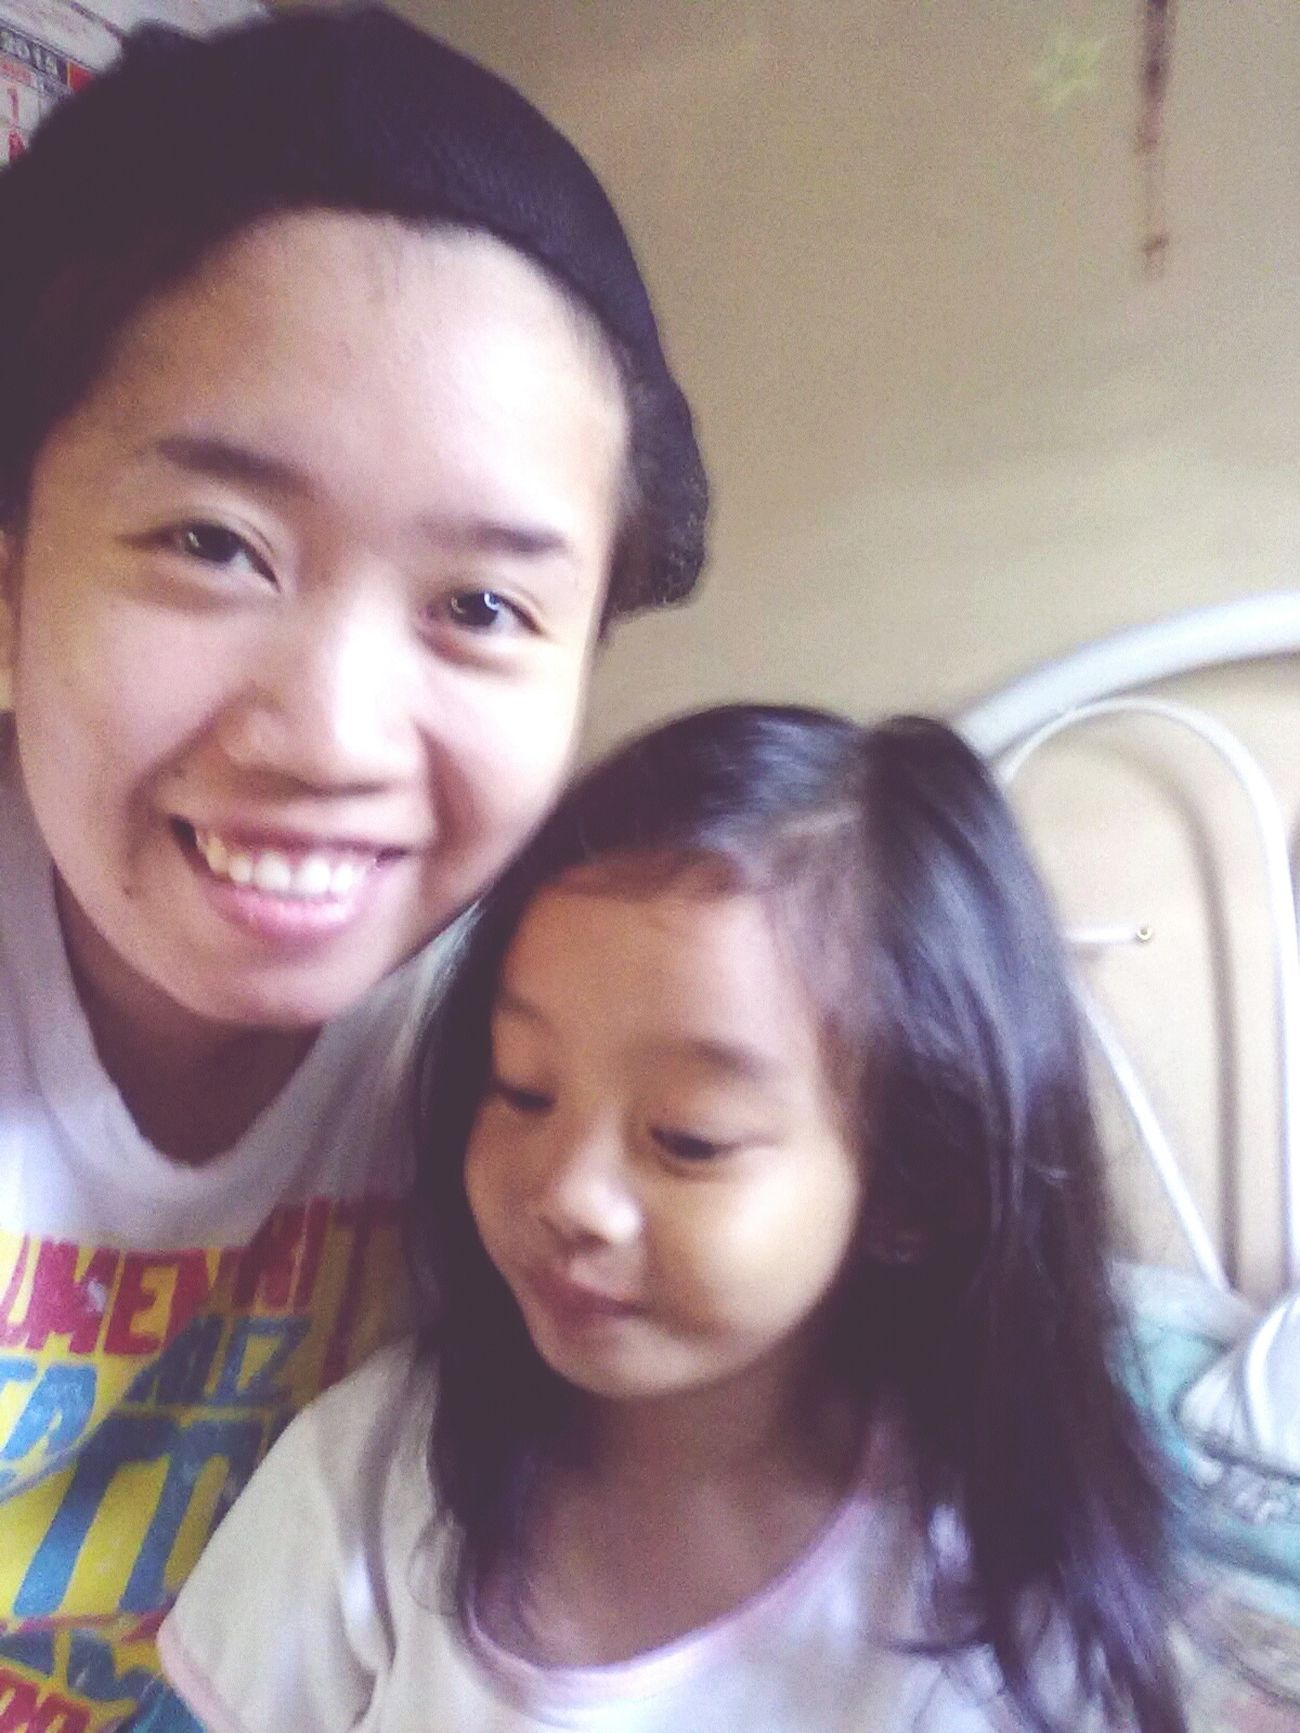 Relaxing Bonding Time Lovely i just love how this lil' girl made my day =) Mileykristel